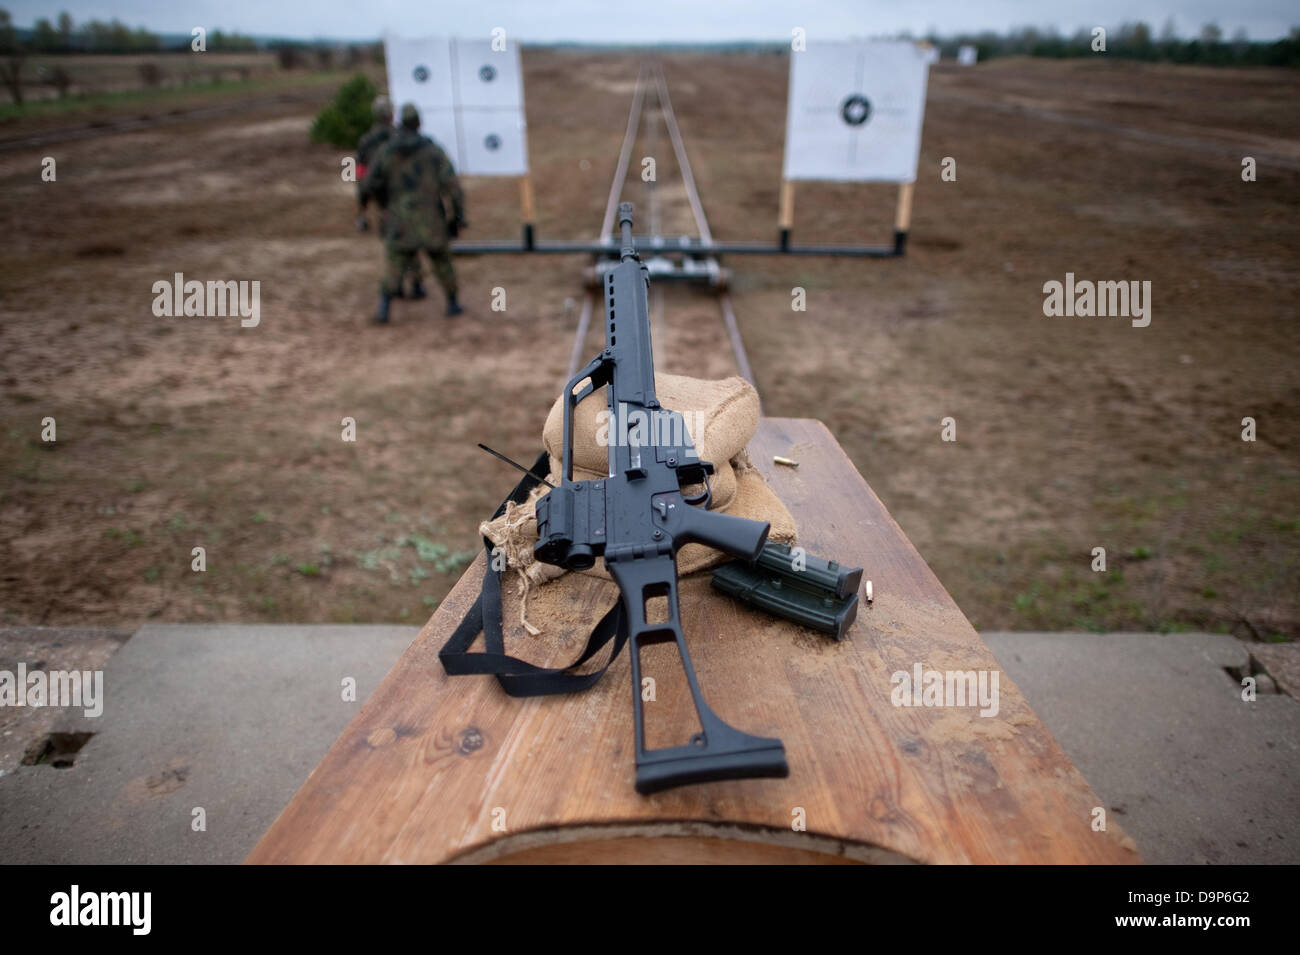 Members of an reservist company of teh German Armed Forces exercise on a shooting range with their assault rifle Stock Photo